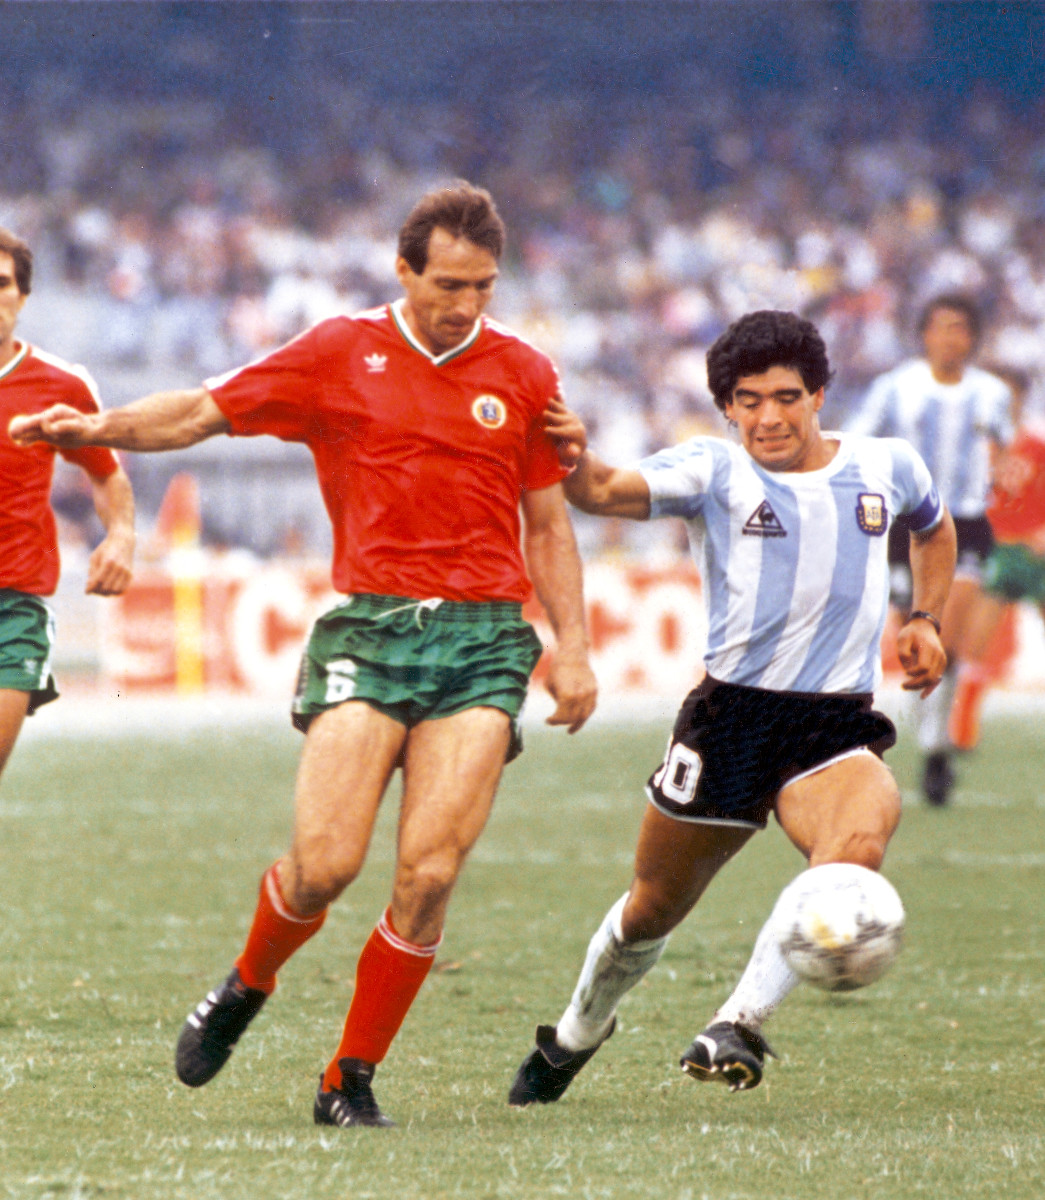 Before his two sublime goals against England, Maradona carved up Bulgaria at the 1986 World Cup in Mexico.